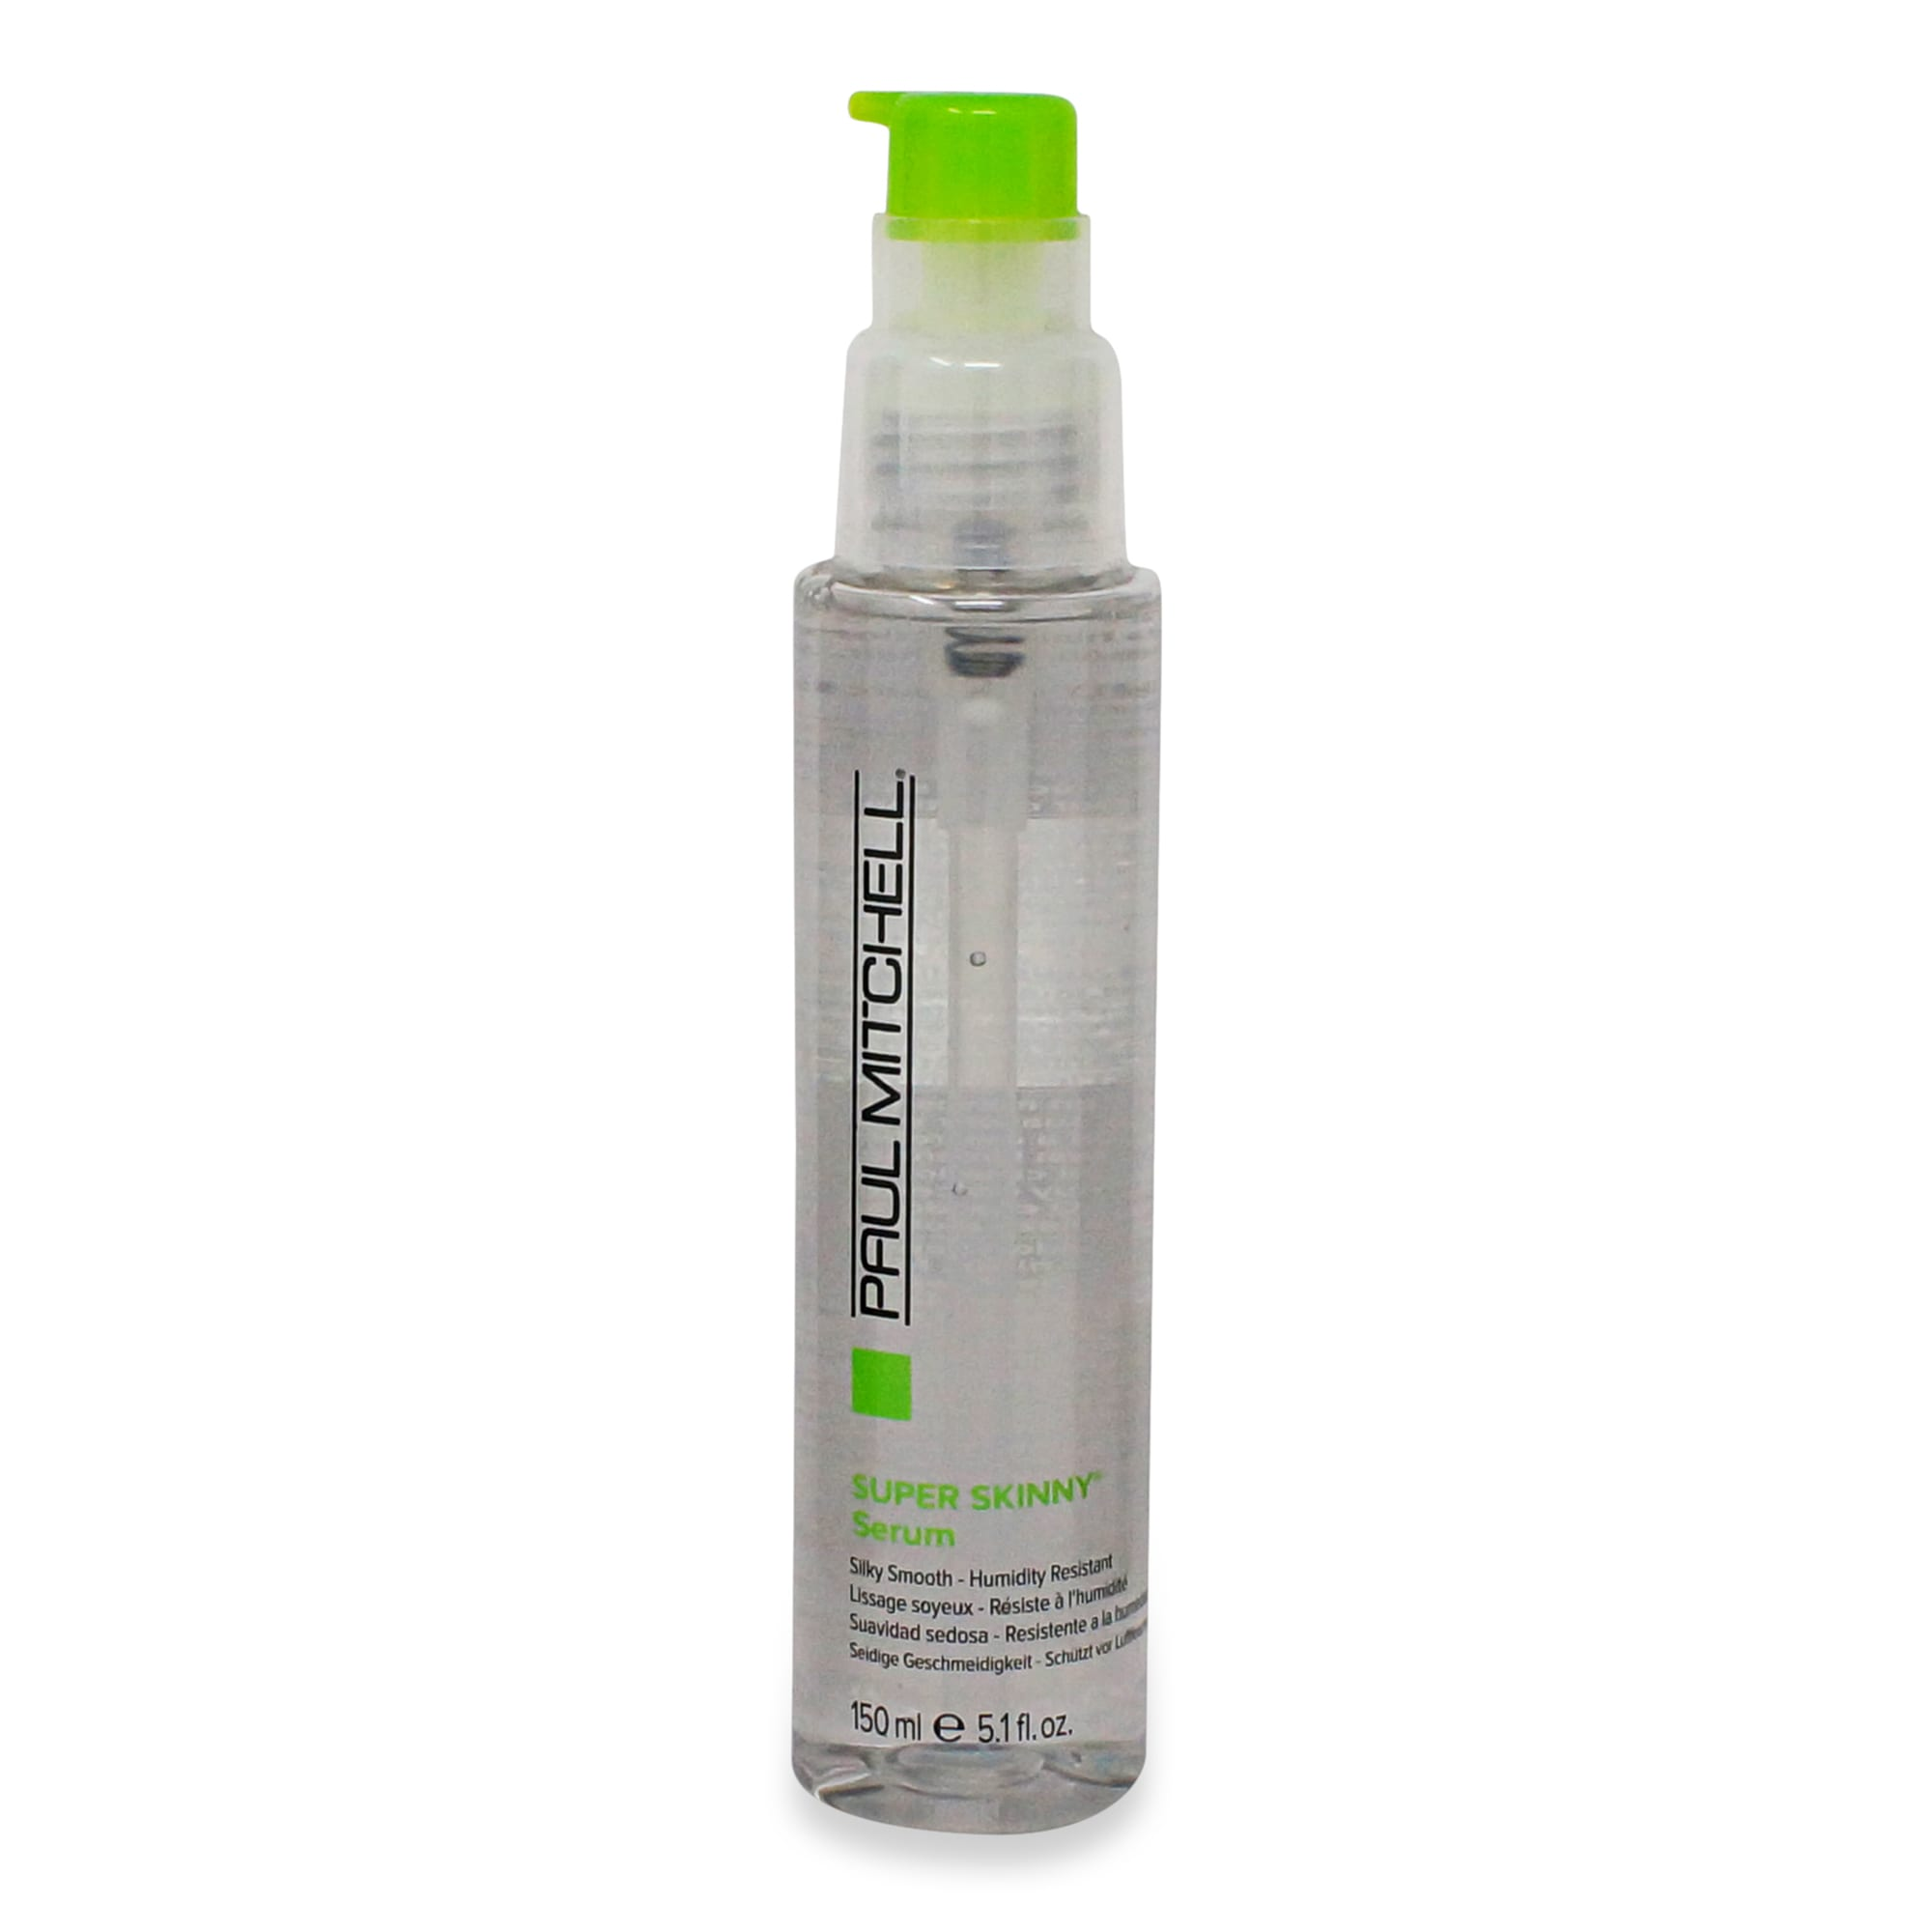 Paul Mitchell Smoothing Super Skinny Serum for a messy bun